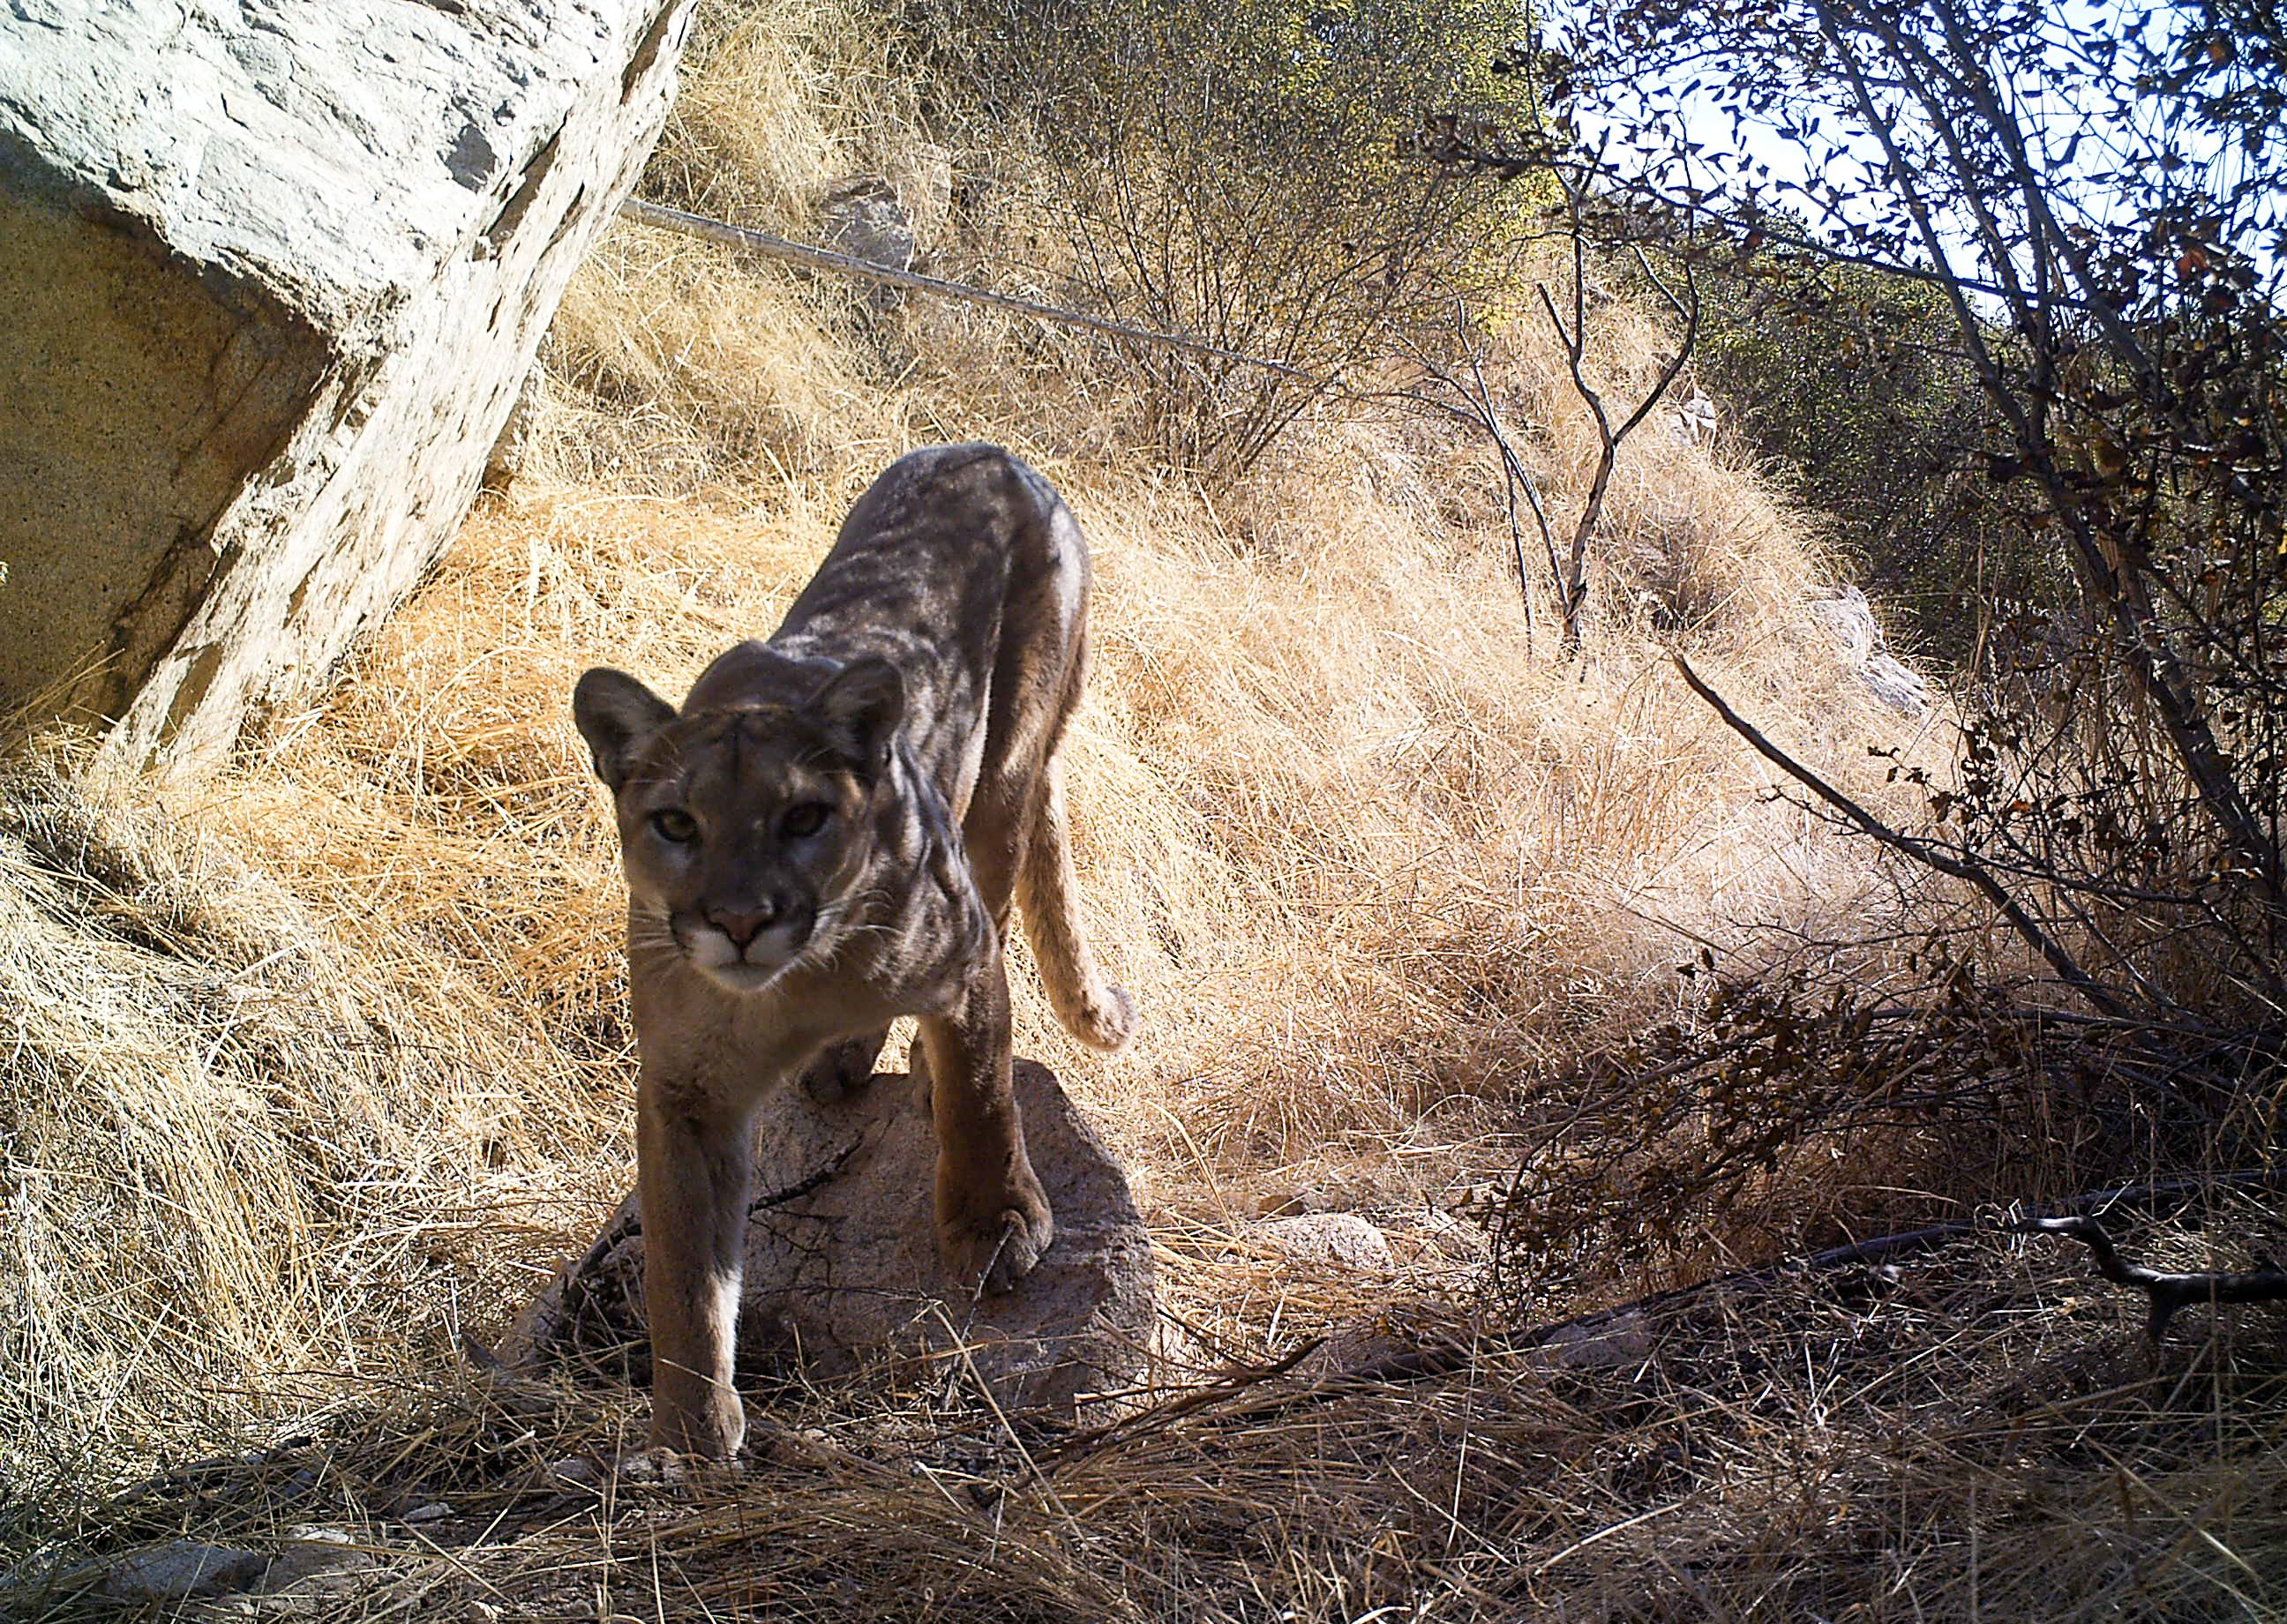 a mountain lion walking through rocks and grass